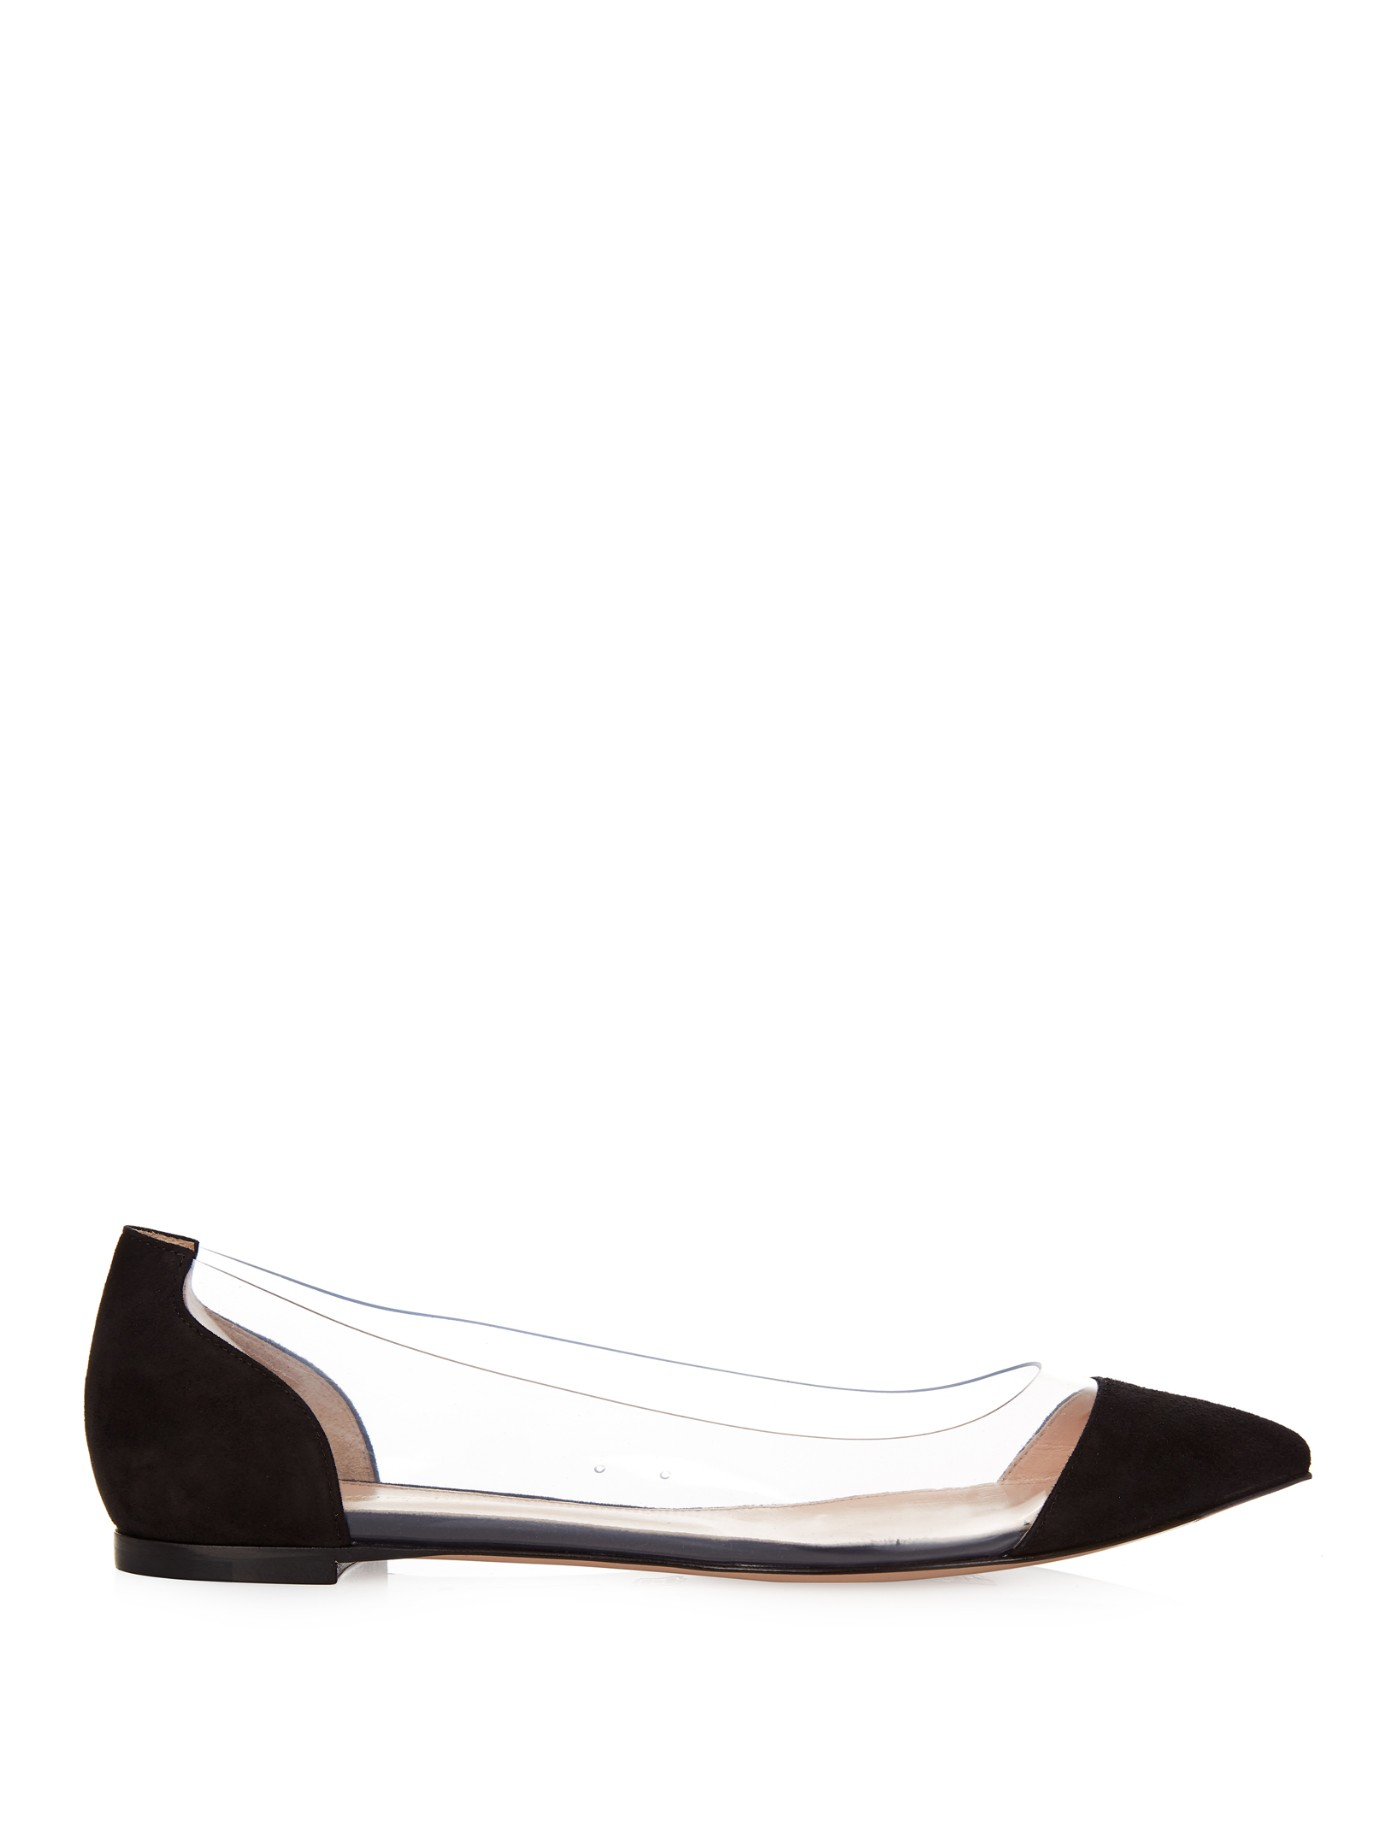 Gianvito Rossi Plexi Flat leather ballerinas bP3e9